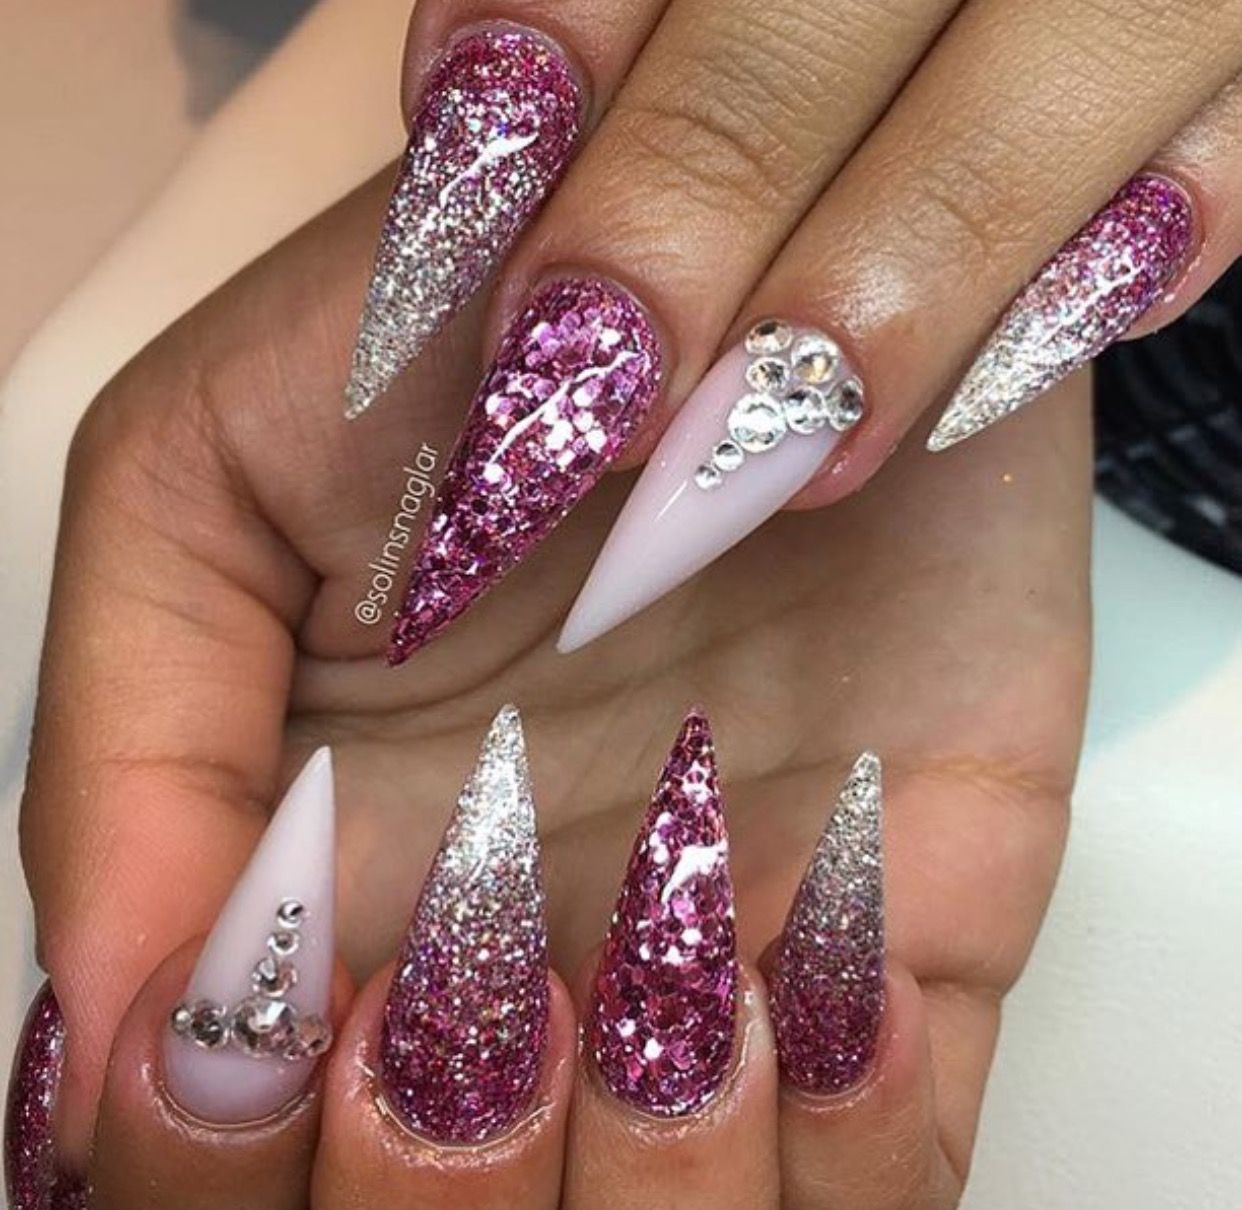 Custom dark pink glitter 3D stiletto nails | nails | Pinterest ...